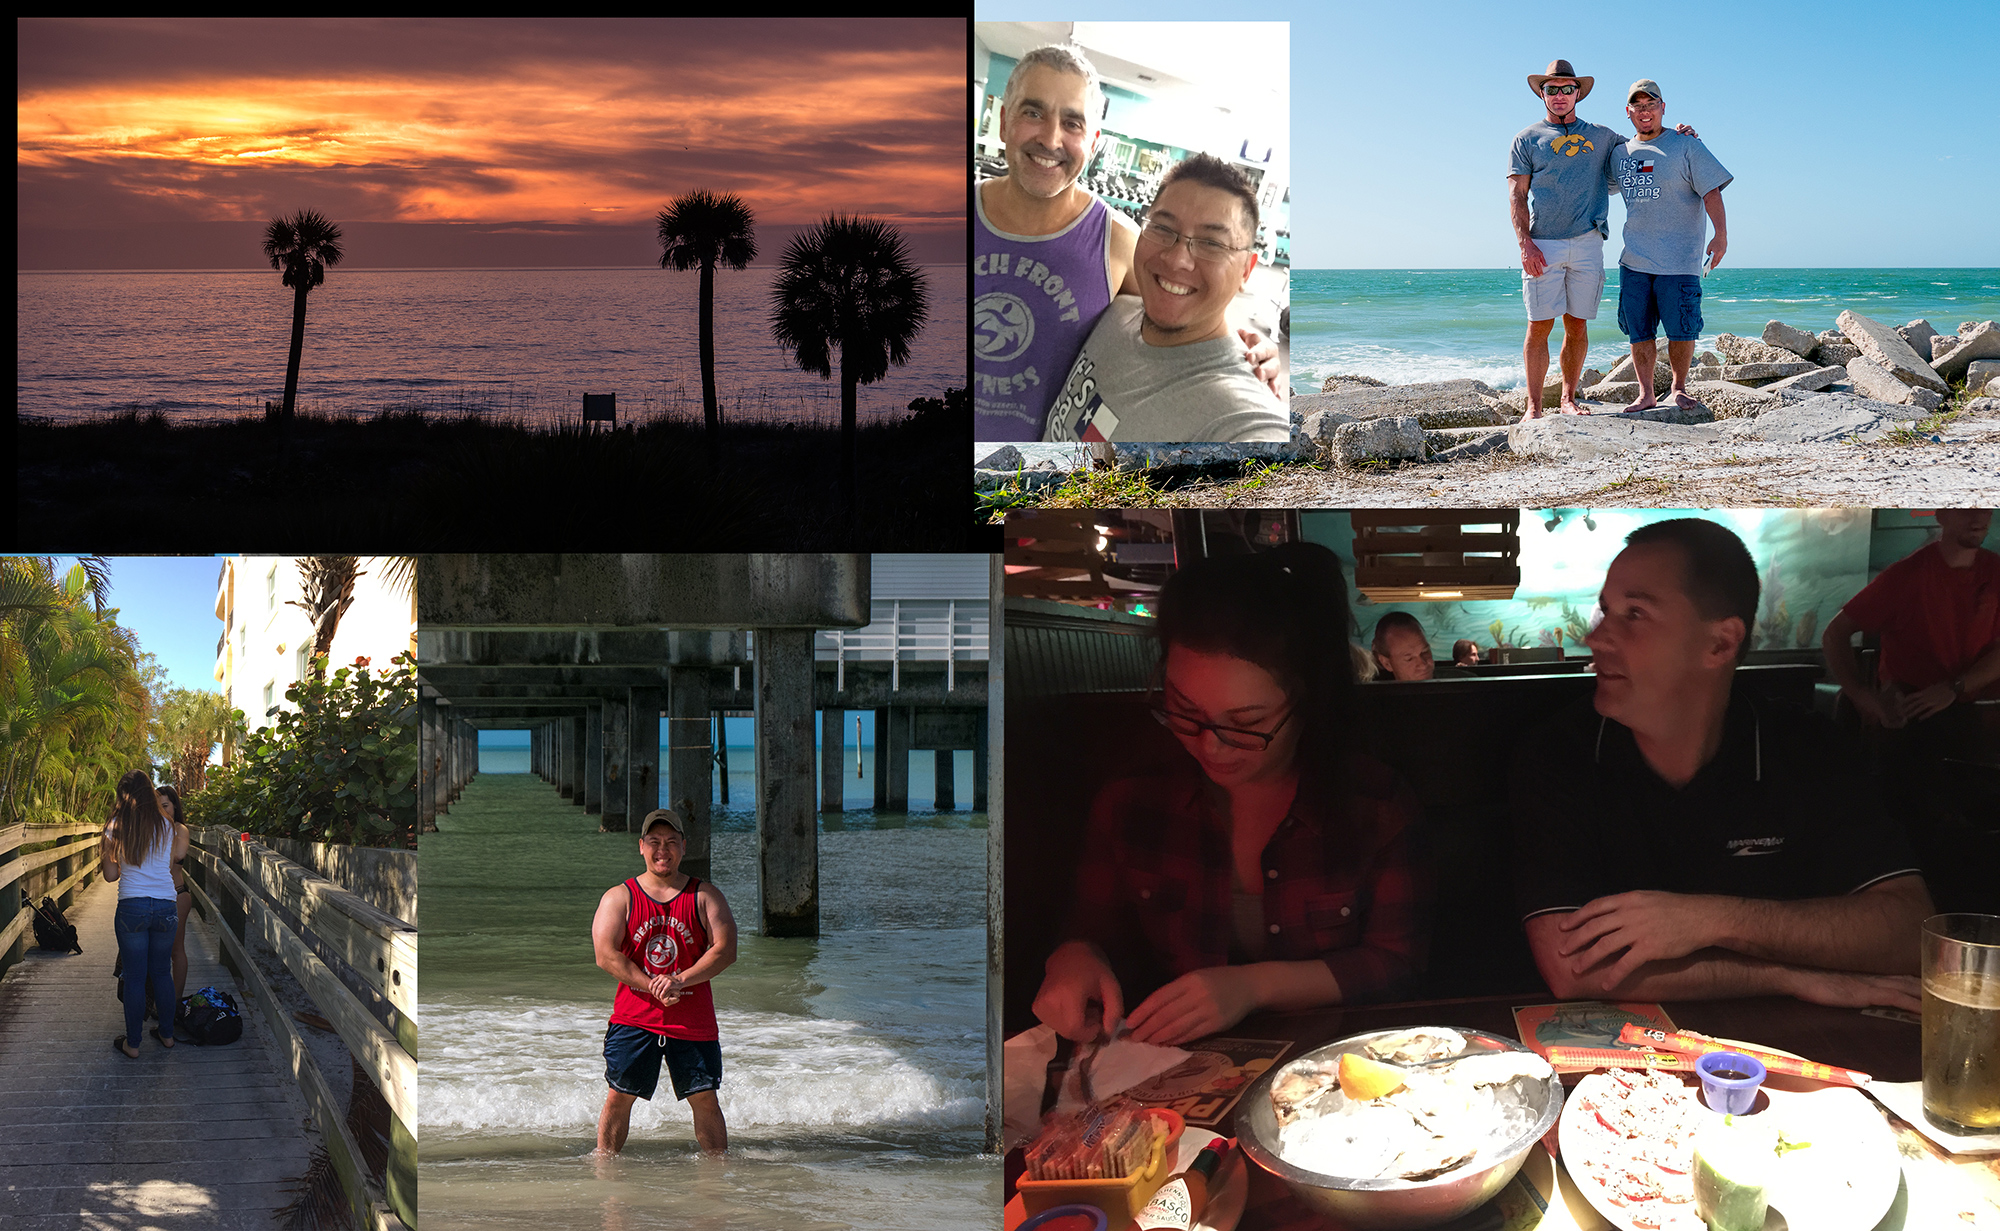 Finally (as hinted on the opening photo), I spent my Christmas in Florida. I saw my good old friend Scott as he showed me beautiful beaches.  I also saw my sister (with her boyfriend), who lives there, and besides catching up we also had a blast talking shit about our disowned brother :D    It was a great trip to get out of the cold.  I'll have more photography-oriented pictures in another blog entry soon.